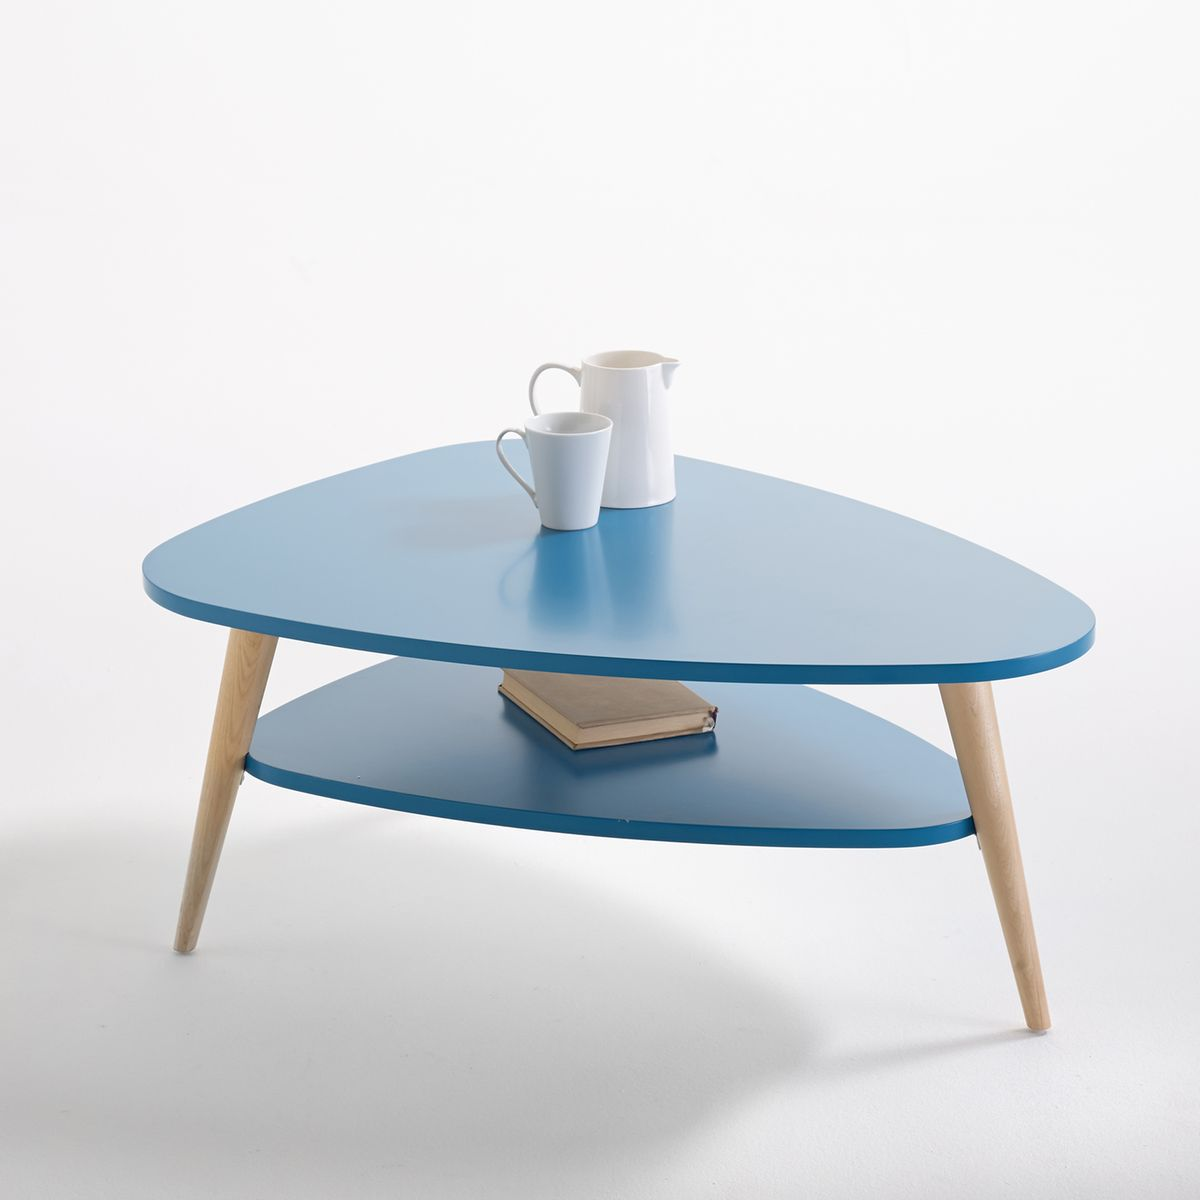 Le dressing de sarablabla d coration et mobilier scandinave for Table basse scandinave la redoute